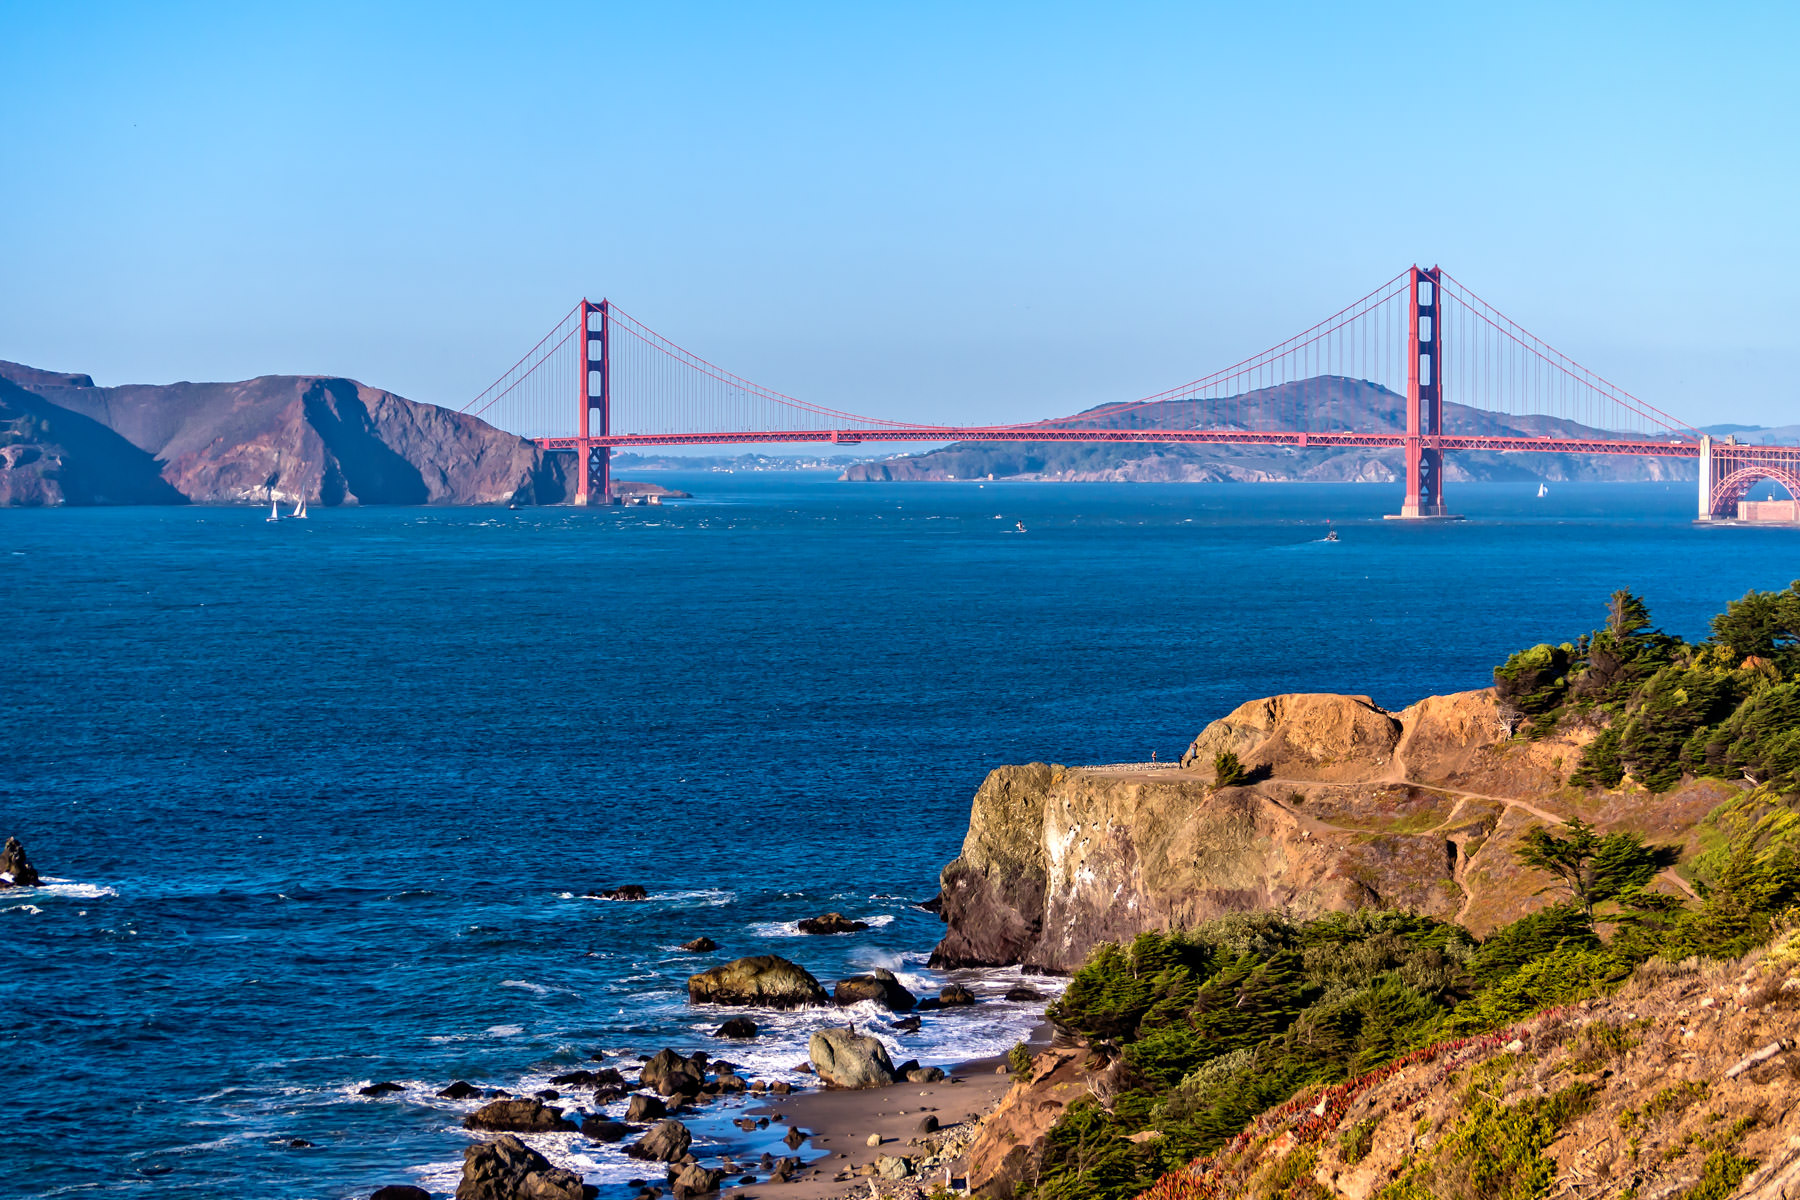 The iconic Golden Gate Bridge spans the entrance to San Francisco Bay as seen from the cliffs of the Coastal Trail at Lands End.